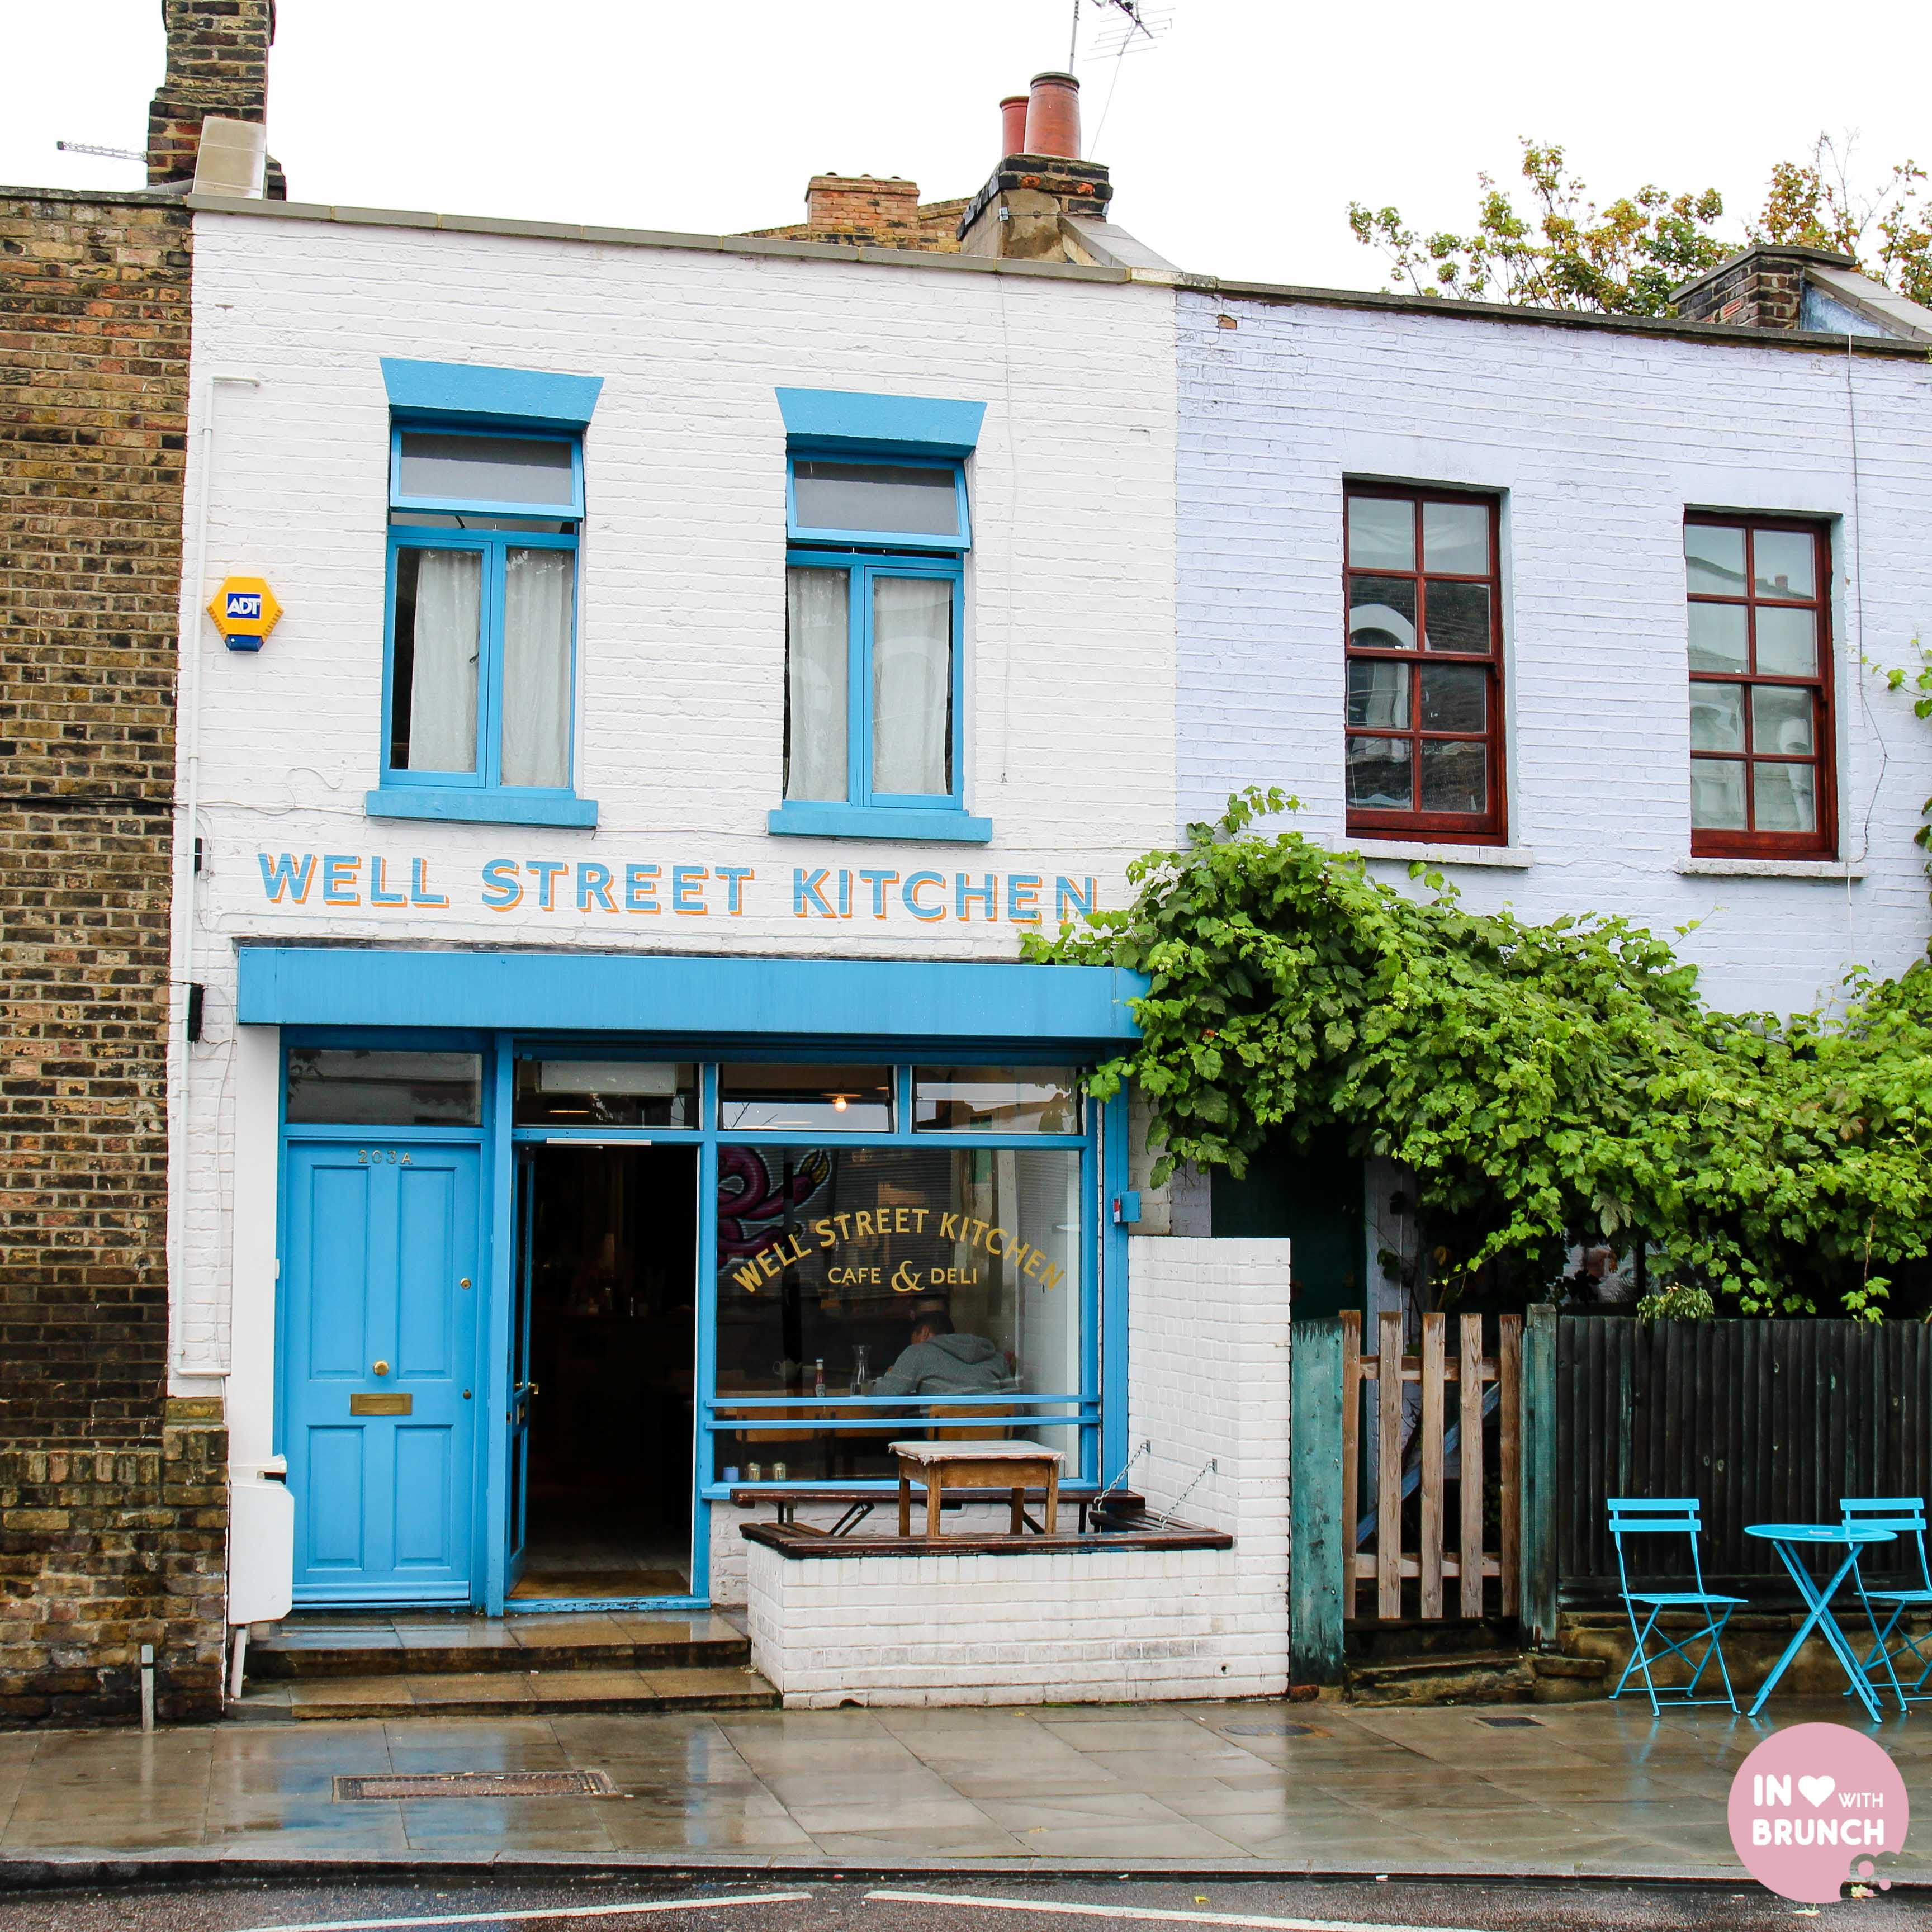 my guide to brunch in east london – inlovewithbrunch